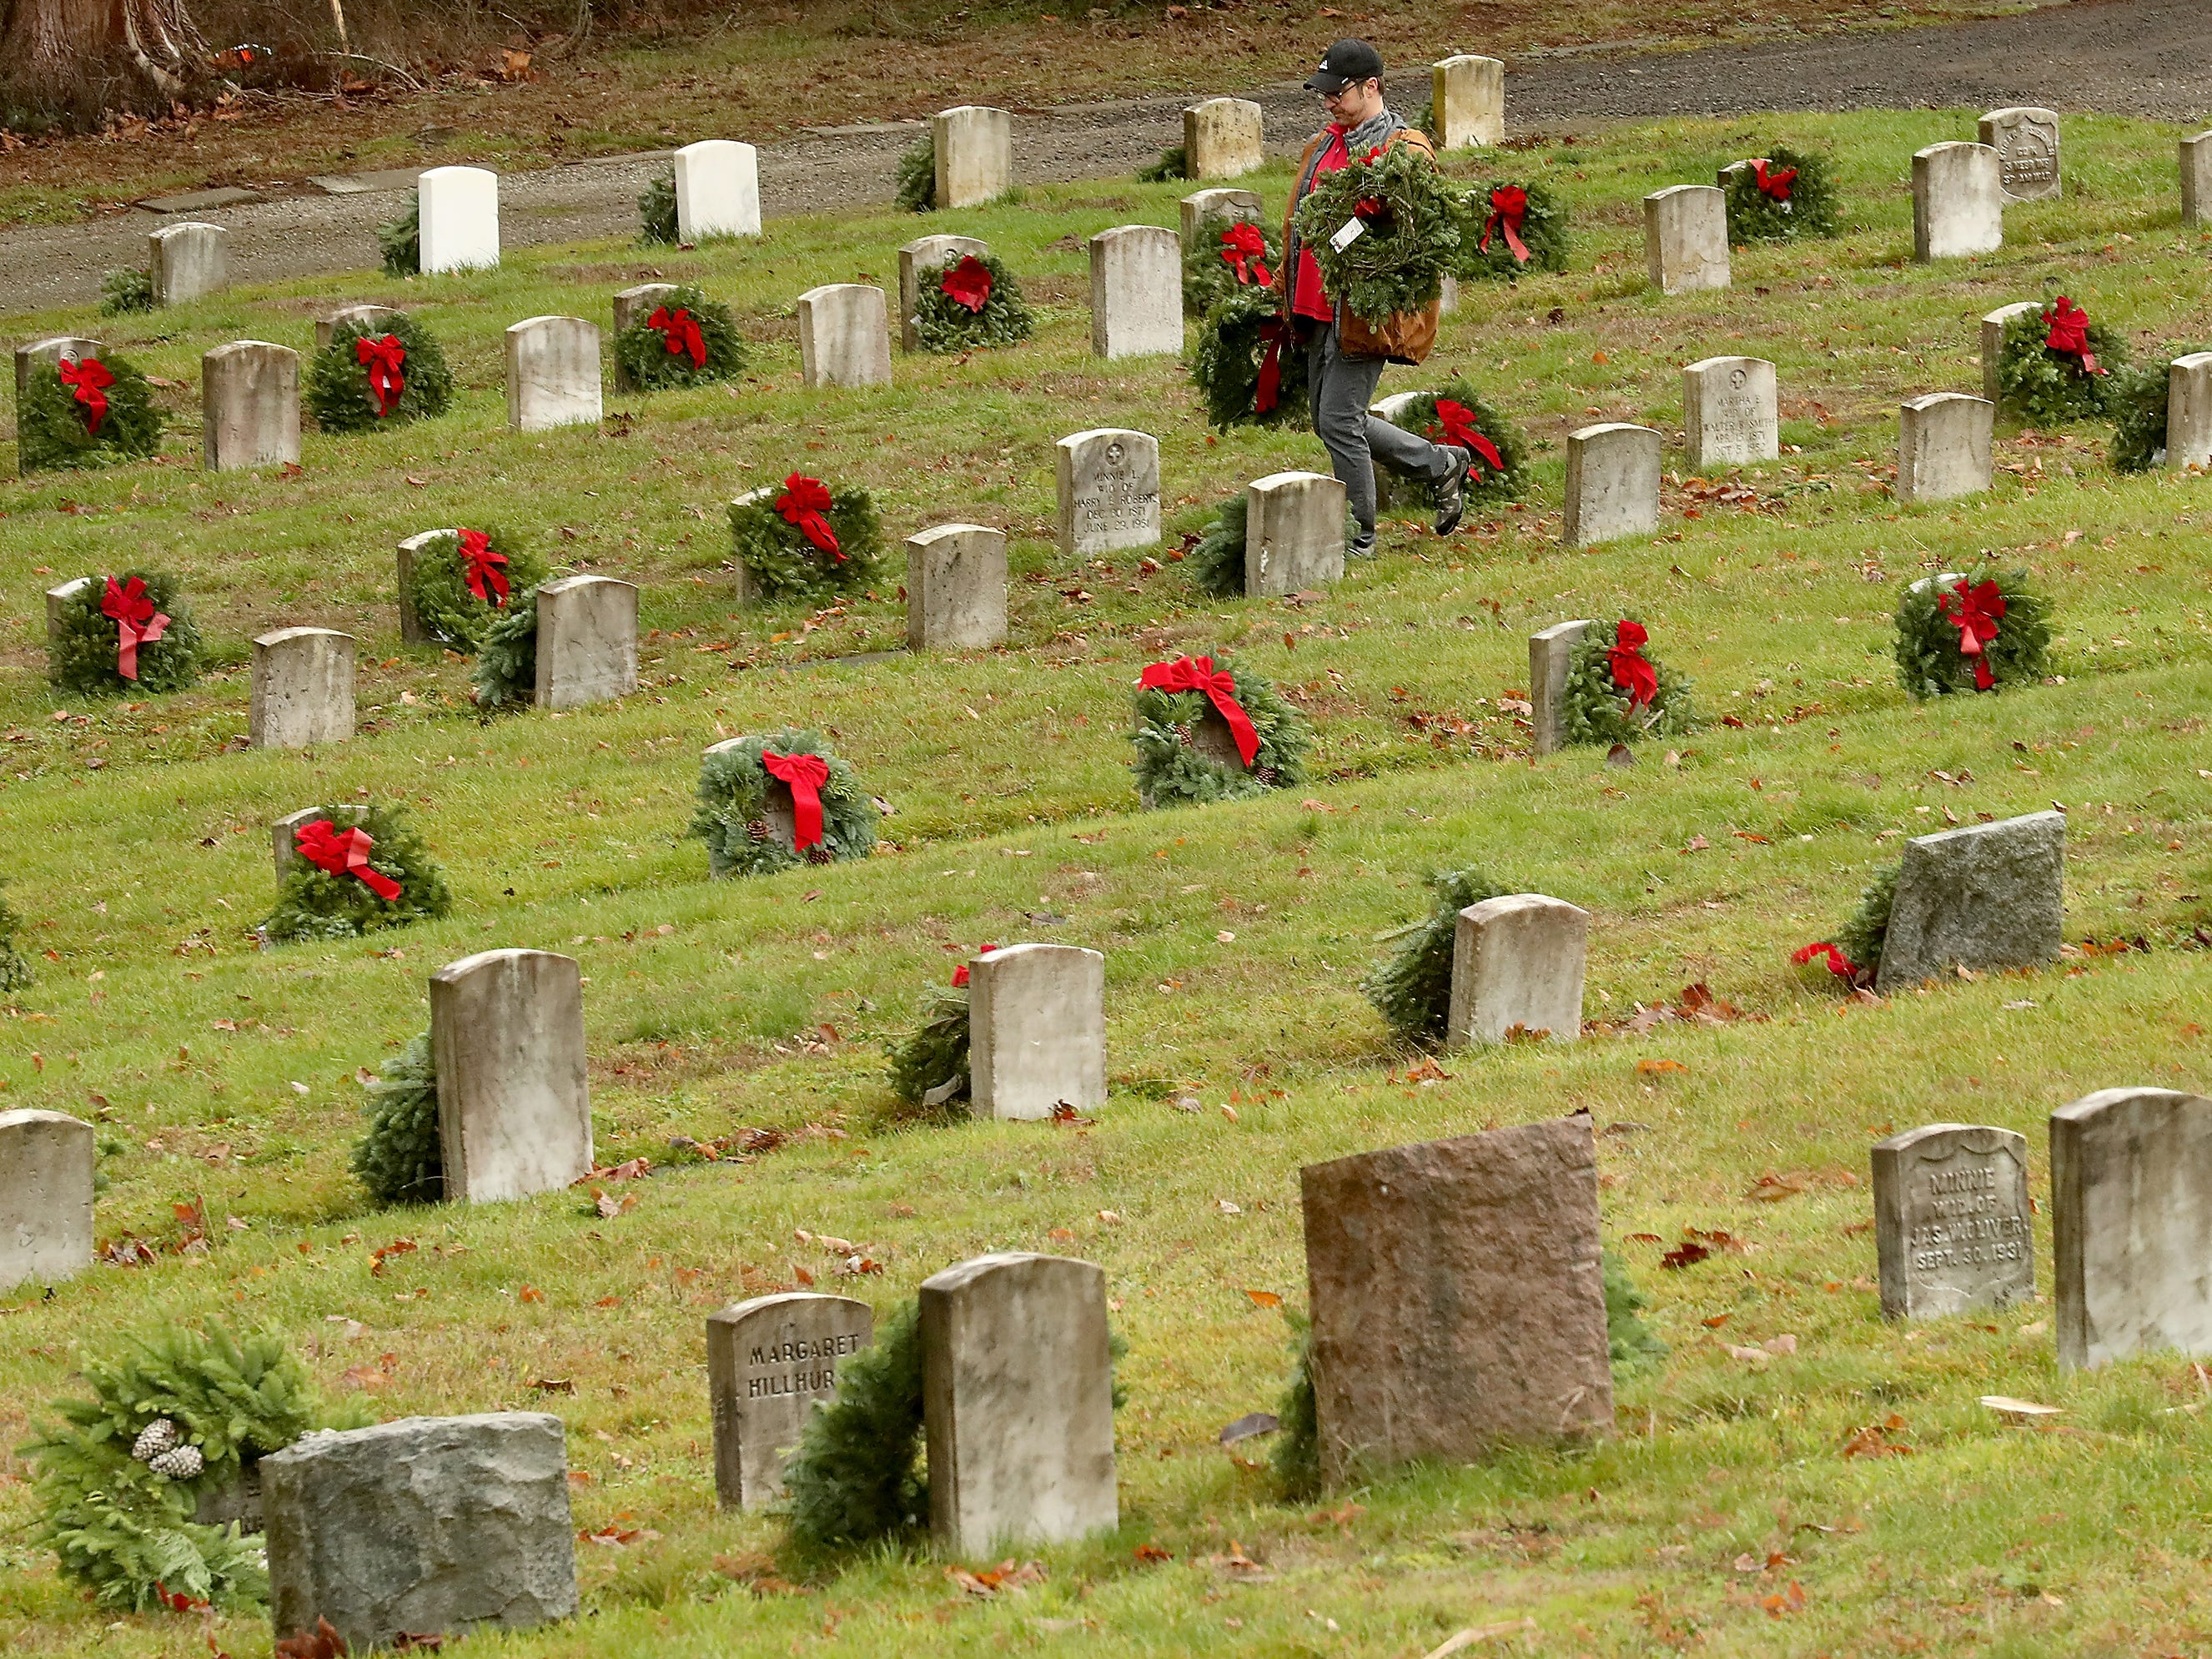 Volunteer Jeff Rose walks among the headstones as he and fellow volunteers place 2143 wreaths during the Wreaths Across America event at the Washington Veterans Home Cemetery in Port Orchard on Saturday, December 15, 2018. The event was organized locally by Veterans Allegiance VMC and VFW Post 2669.